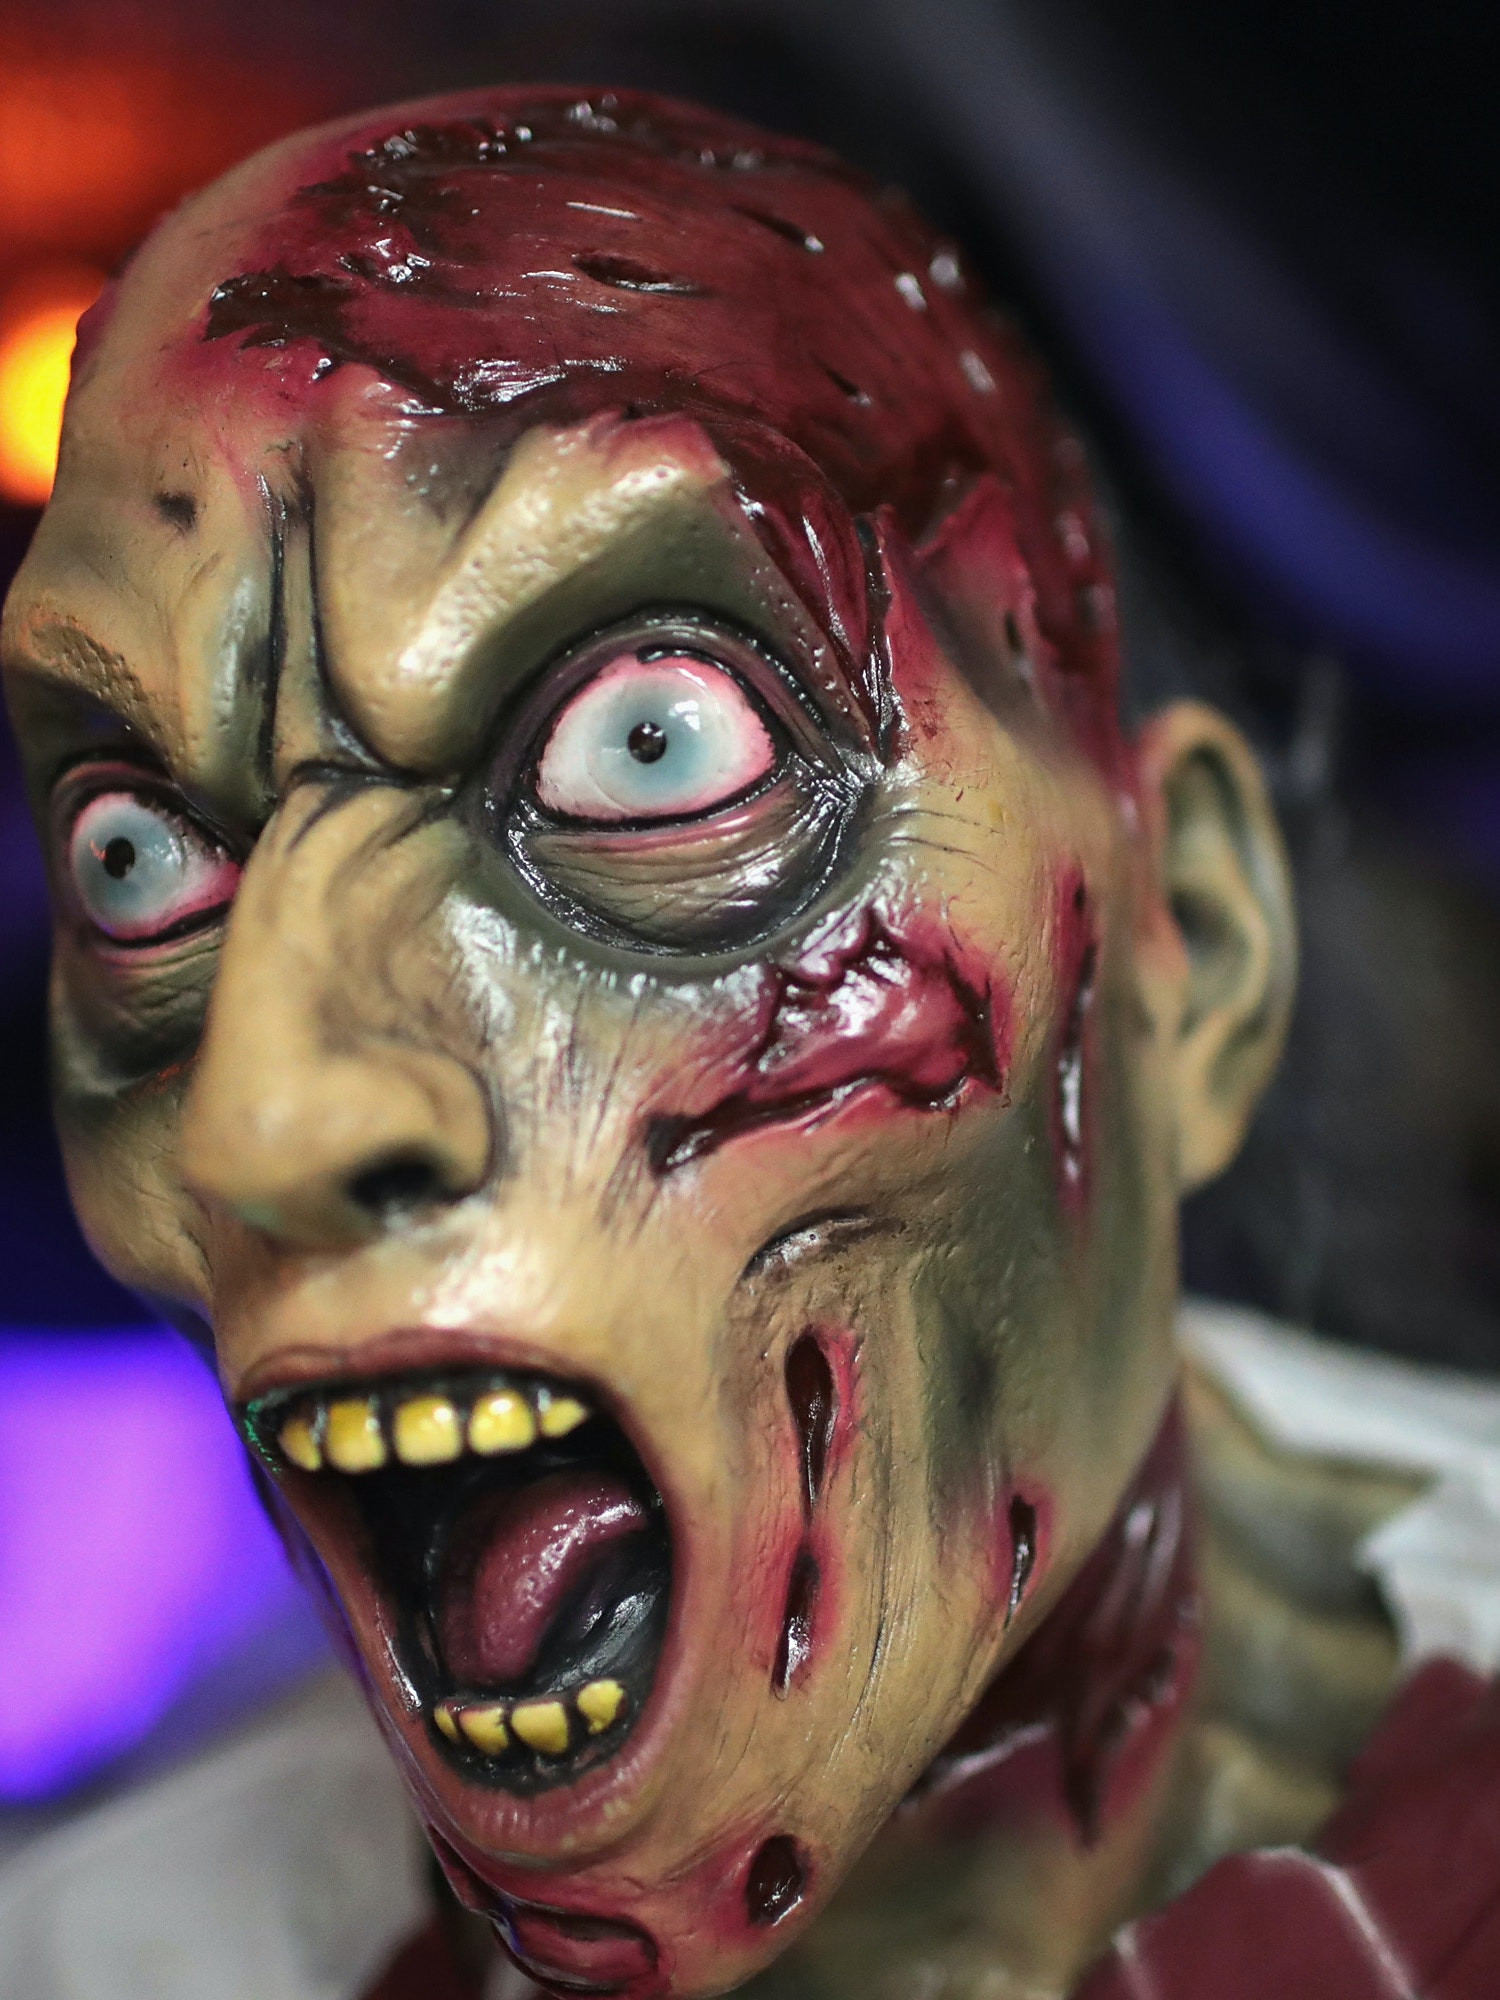 CHICAGO, IL - OCTOBER 19:  Halloween props and masks are offered for sale at Fantasy Costumes on October 19, 2016 in Chicago, Illinois.  Although at least one major retailer has removed creepy clown costumes from their store shelves in the wake of negative news stories, Fantasy Costumes said they are one of this season's biggest sellers. (Photo by Scott Olson/Getty Images)